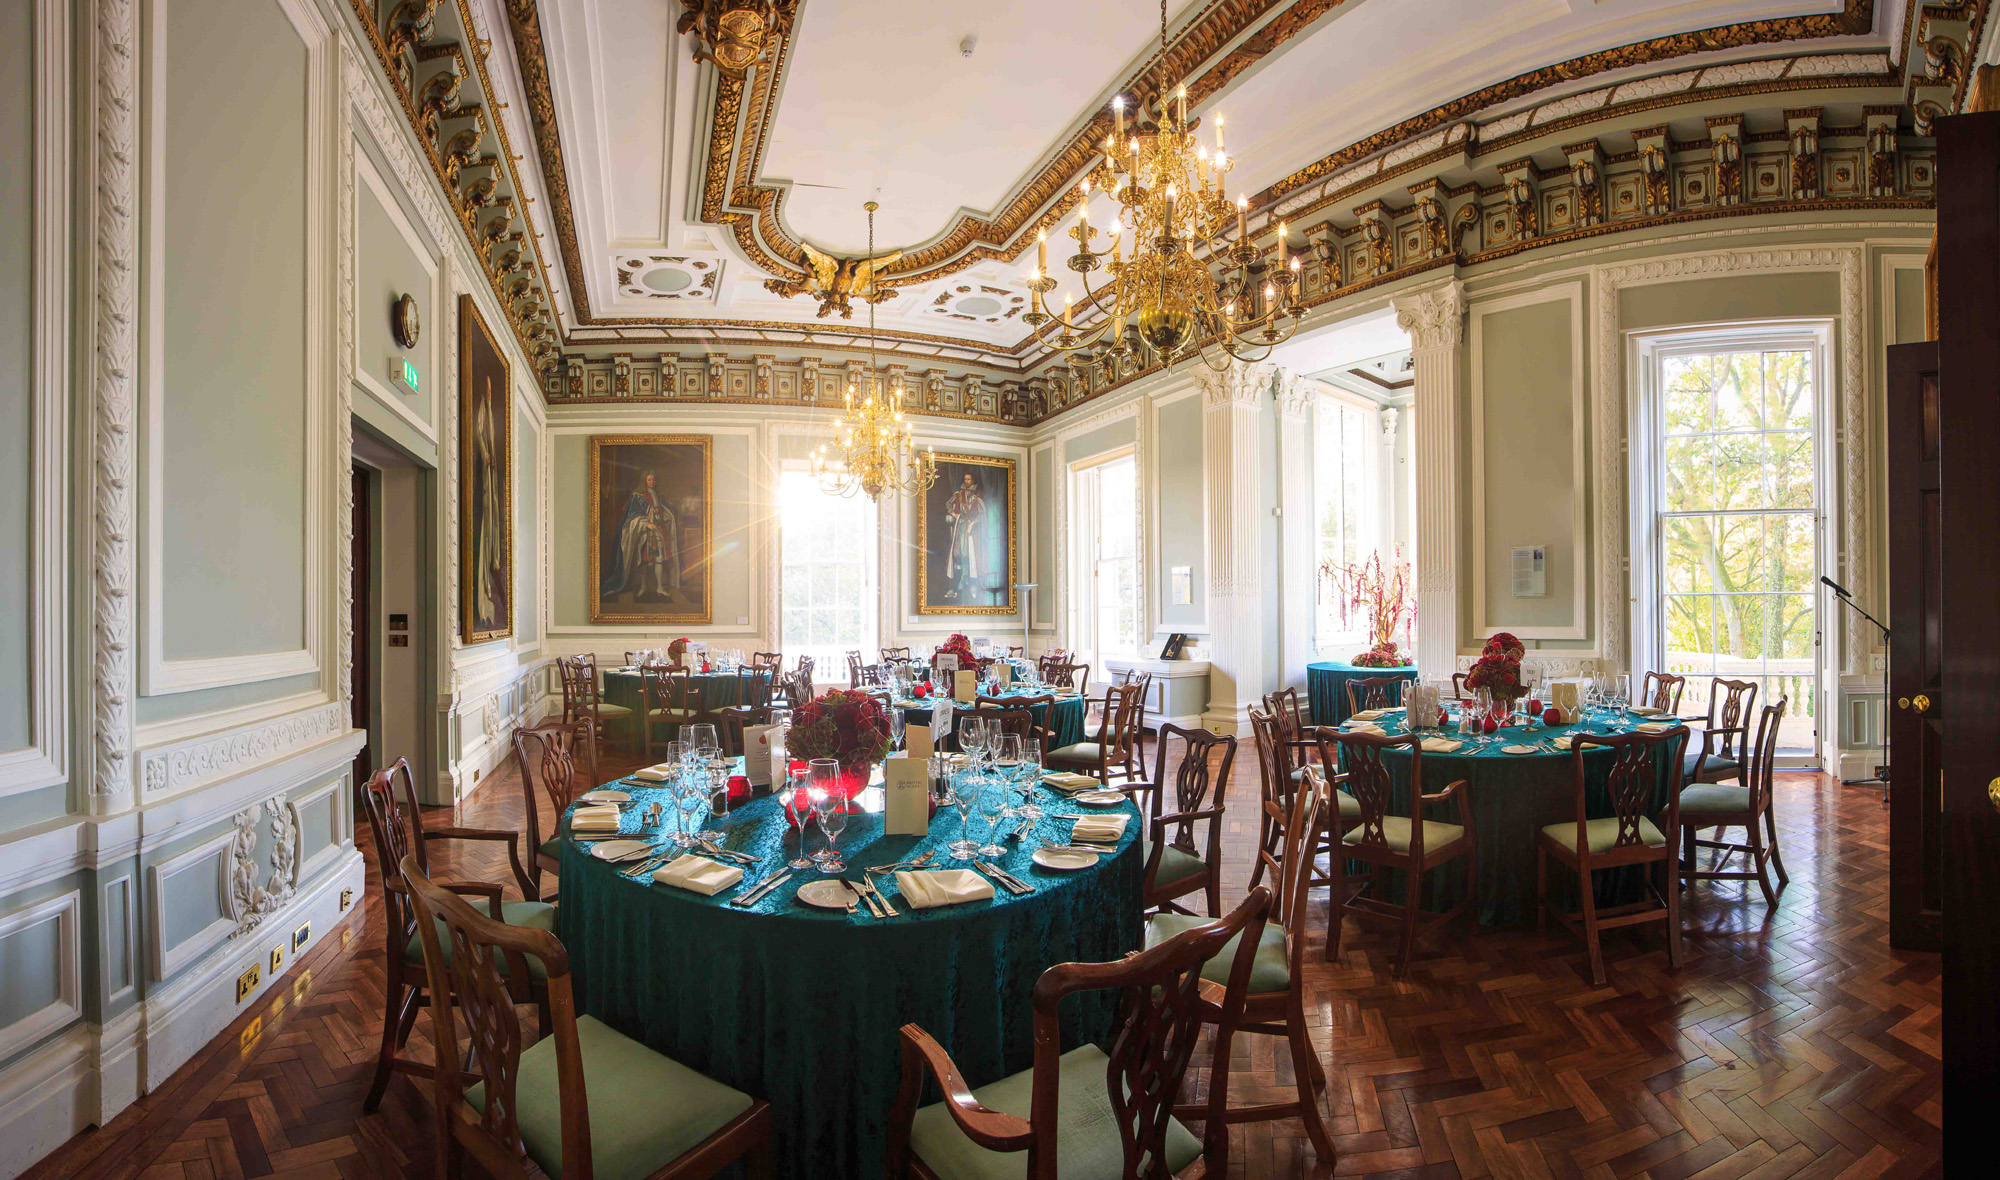 Christmas at 10-11 Carlton House Terrace british academy london venues private hire events banqueting dining